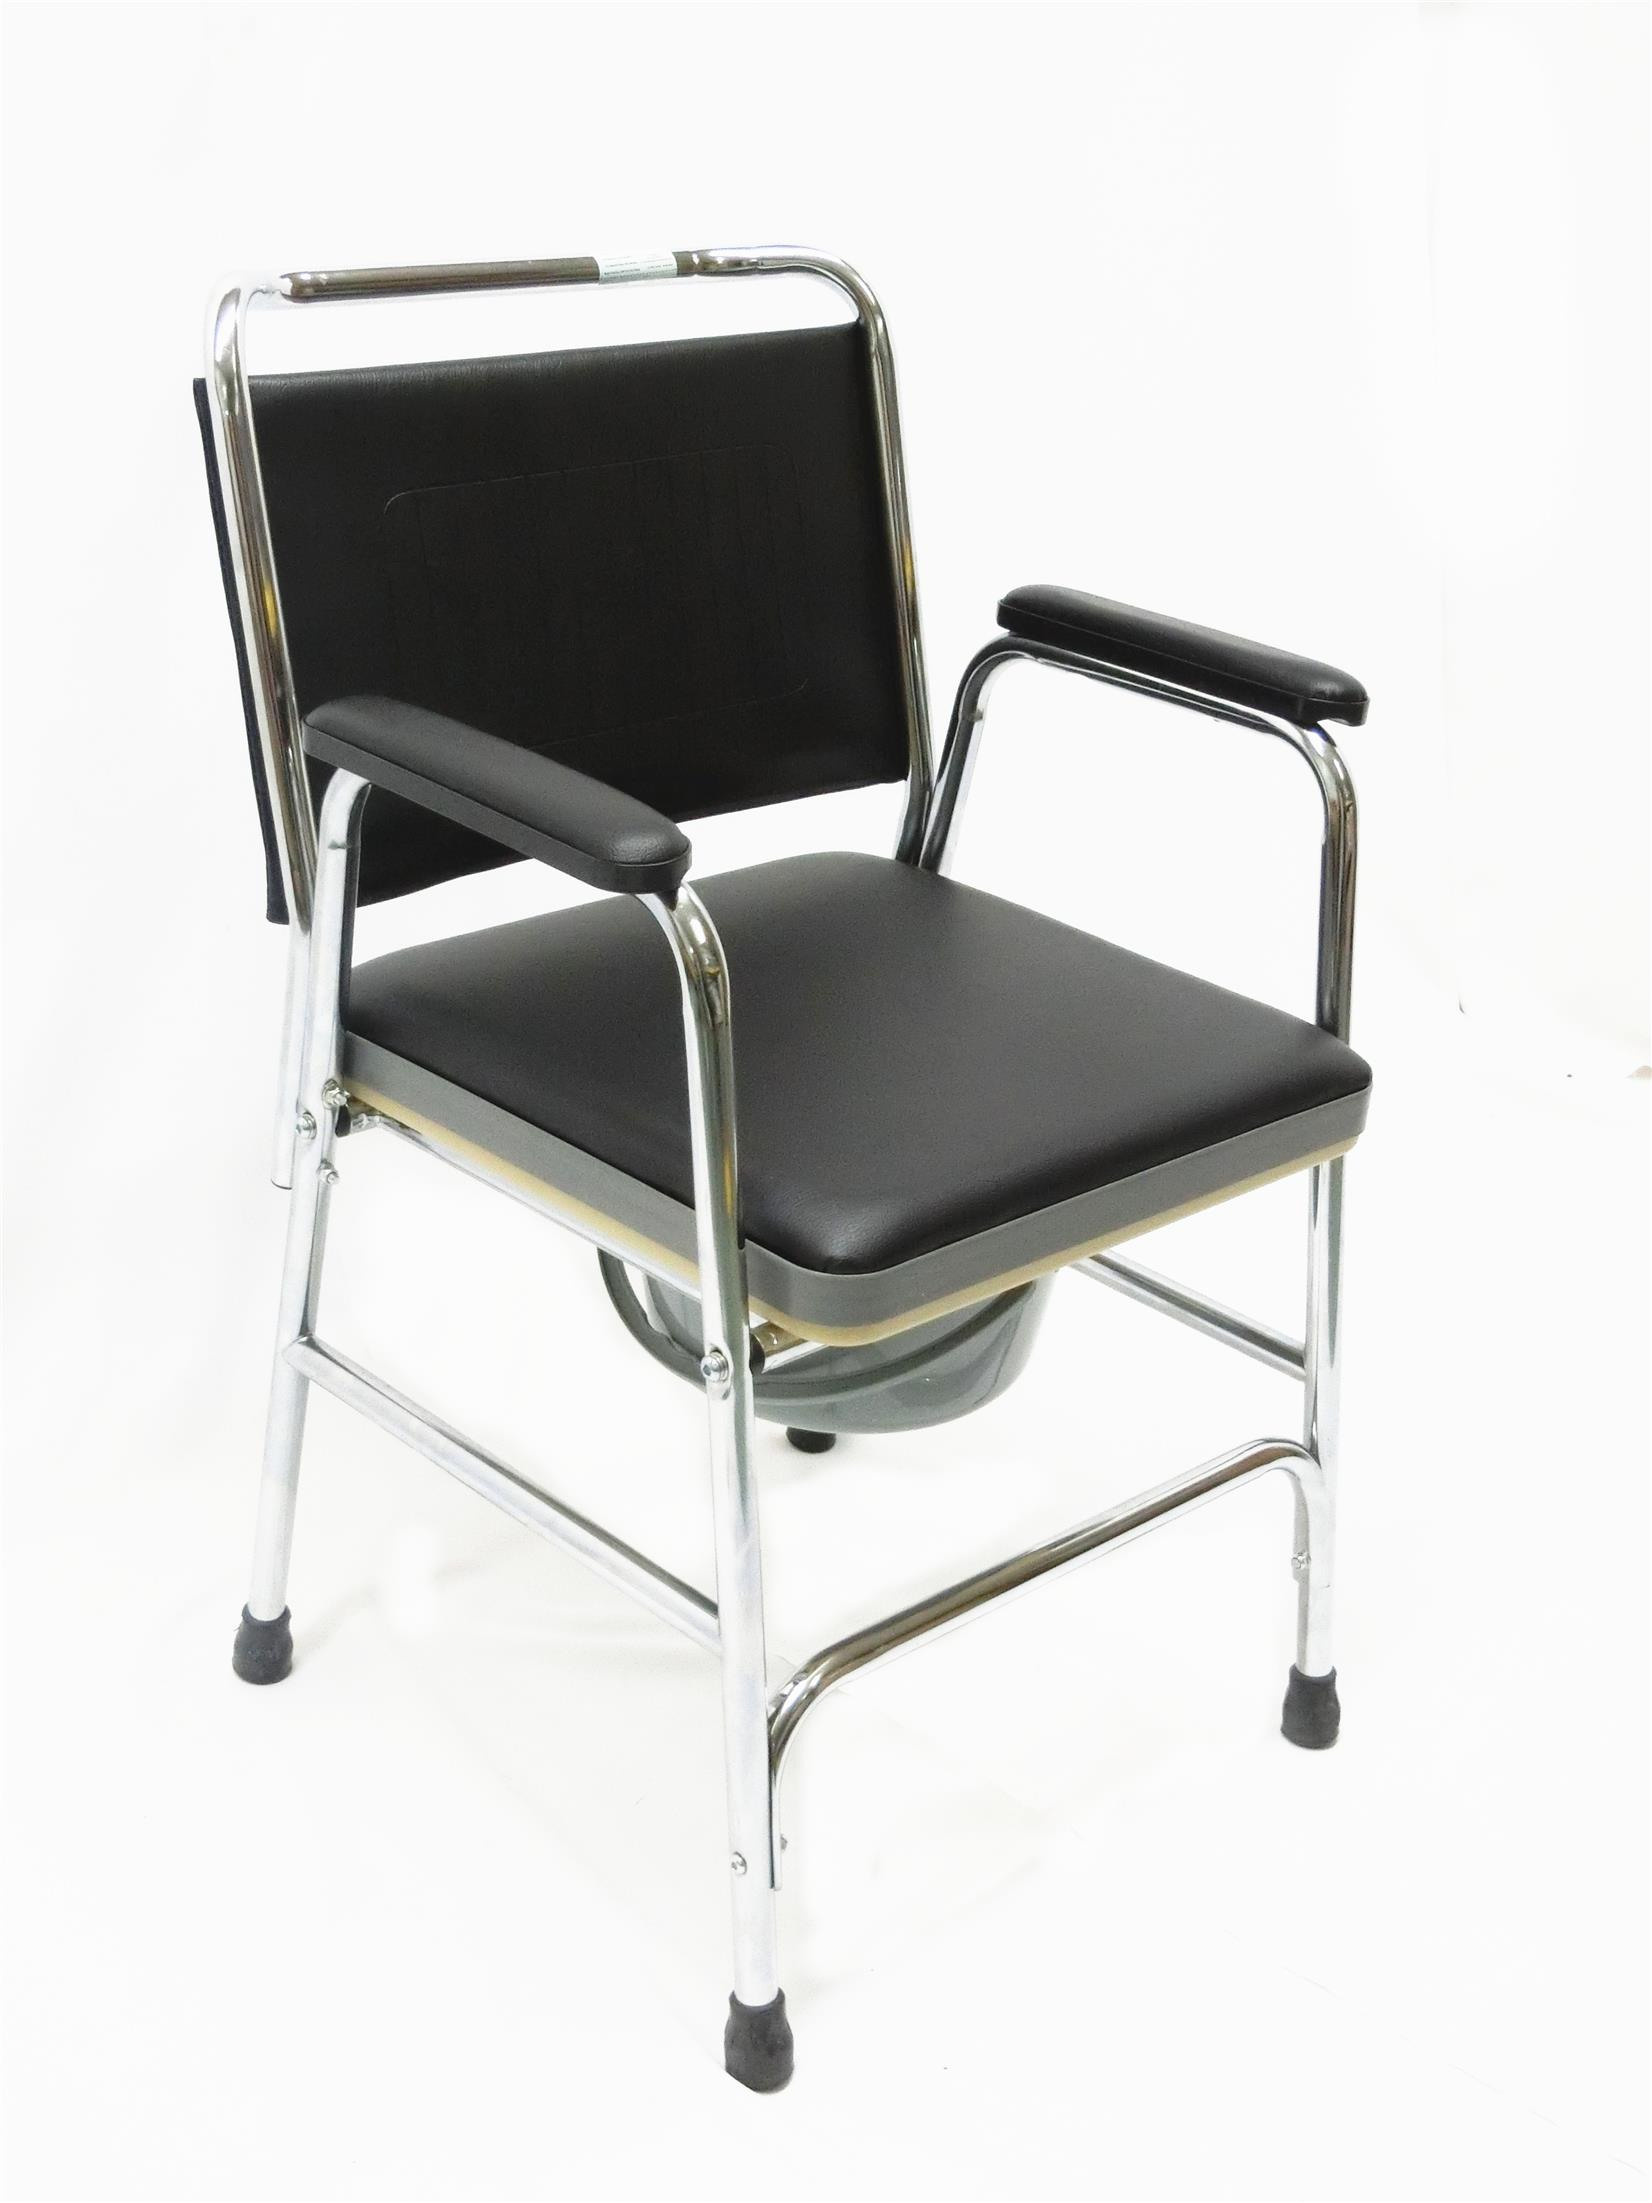 mode Chair without foot holder ke end 8 23 2018 8 15 PM